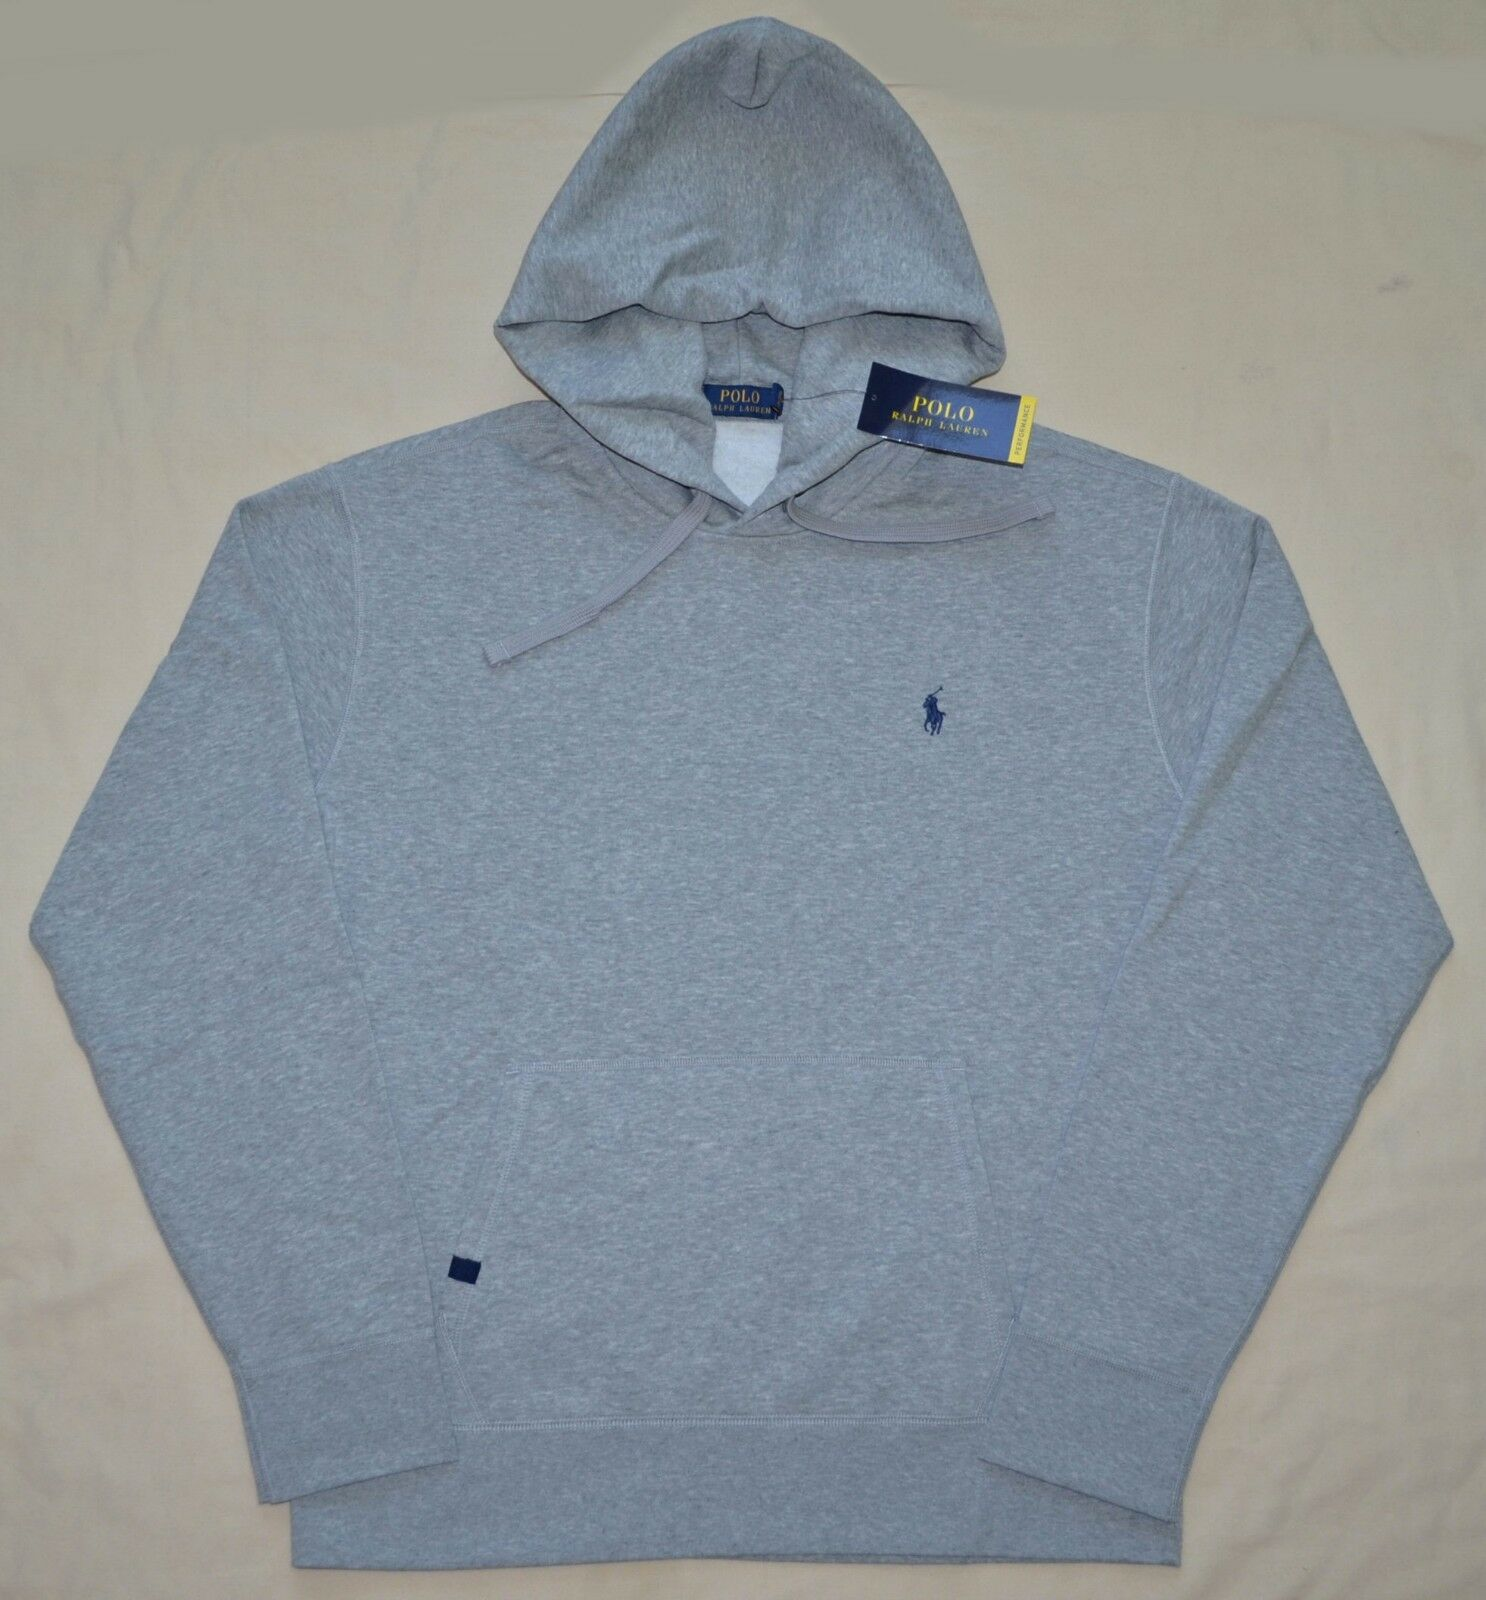 New Medium M POLO RALPH LAUREN  Herren pullover fleece hoodie sweatshirt grau Grau